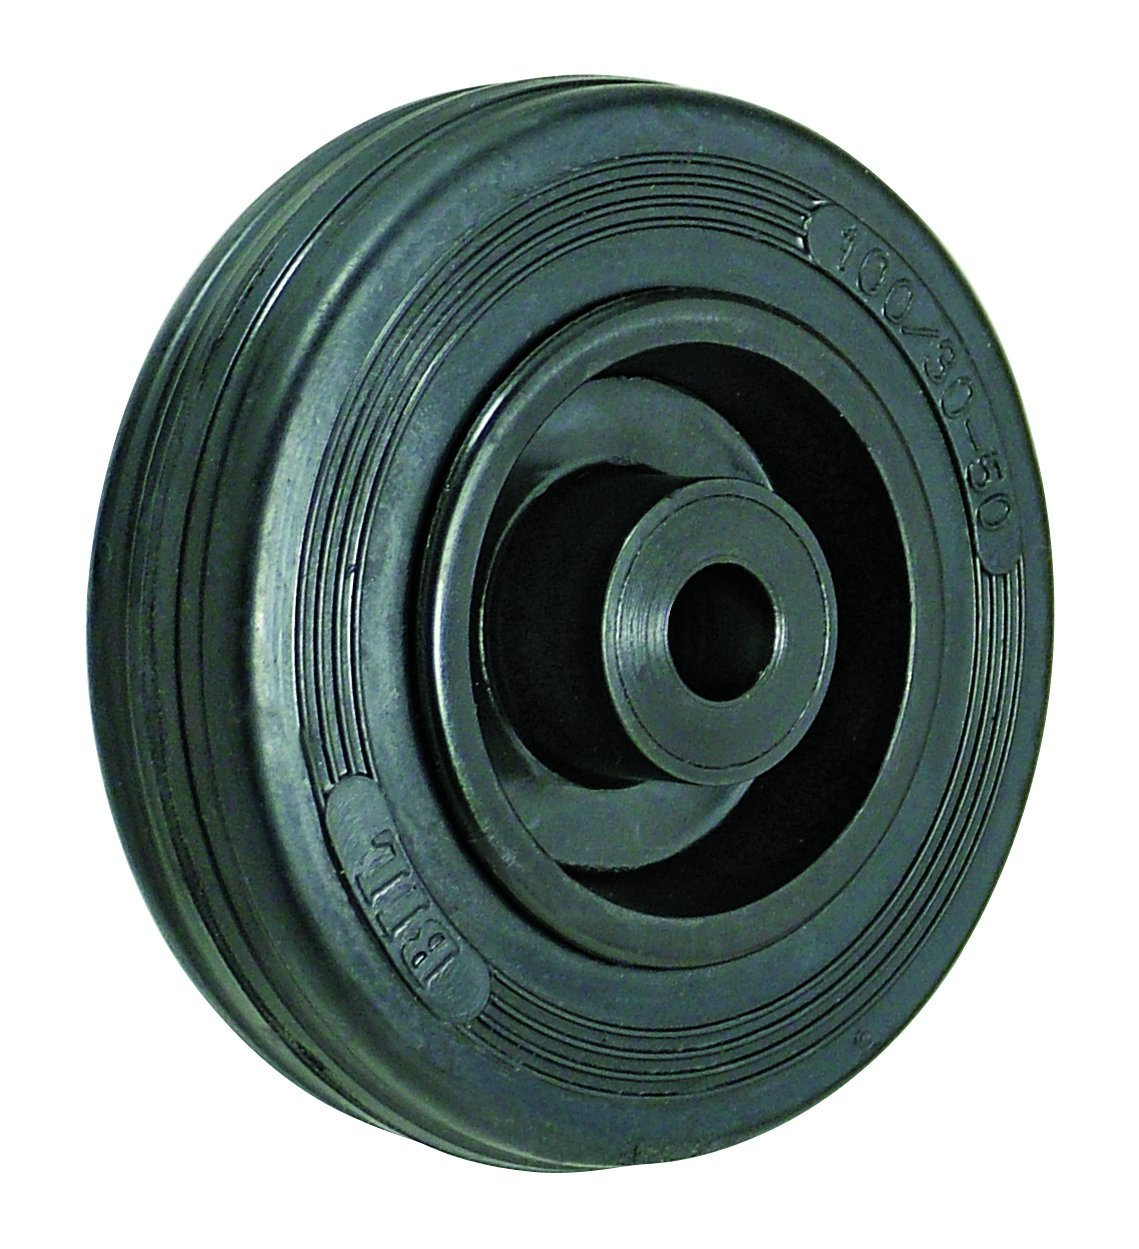 BIL BZMM125WPSRB Series WPS Wheel, Rubber On Polypropylene, 125 mm Diameter, 37.5 mm Tread, 40 mm Hub, 12 mm Bore, 90 kg Load, Black BIL Group Ltd